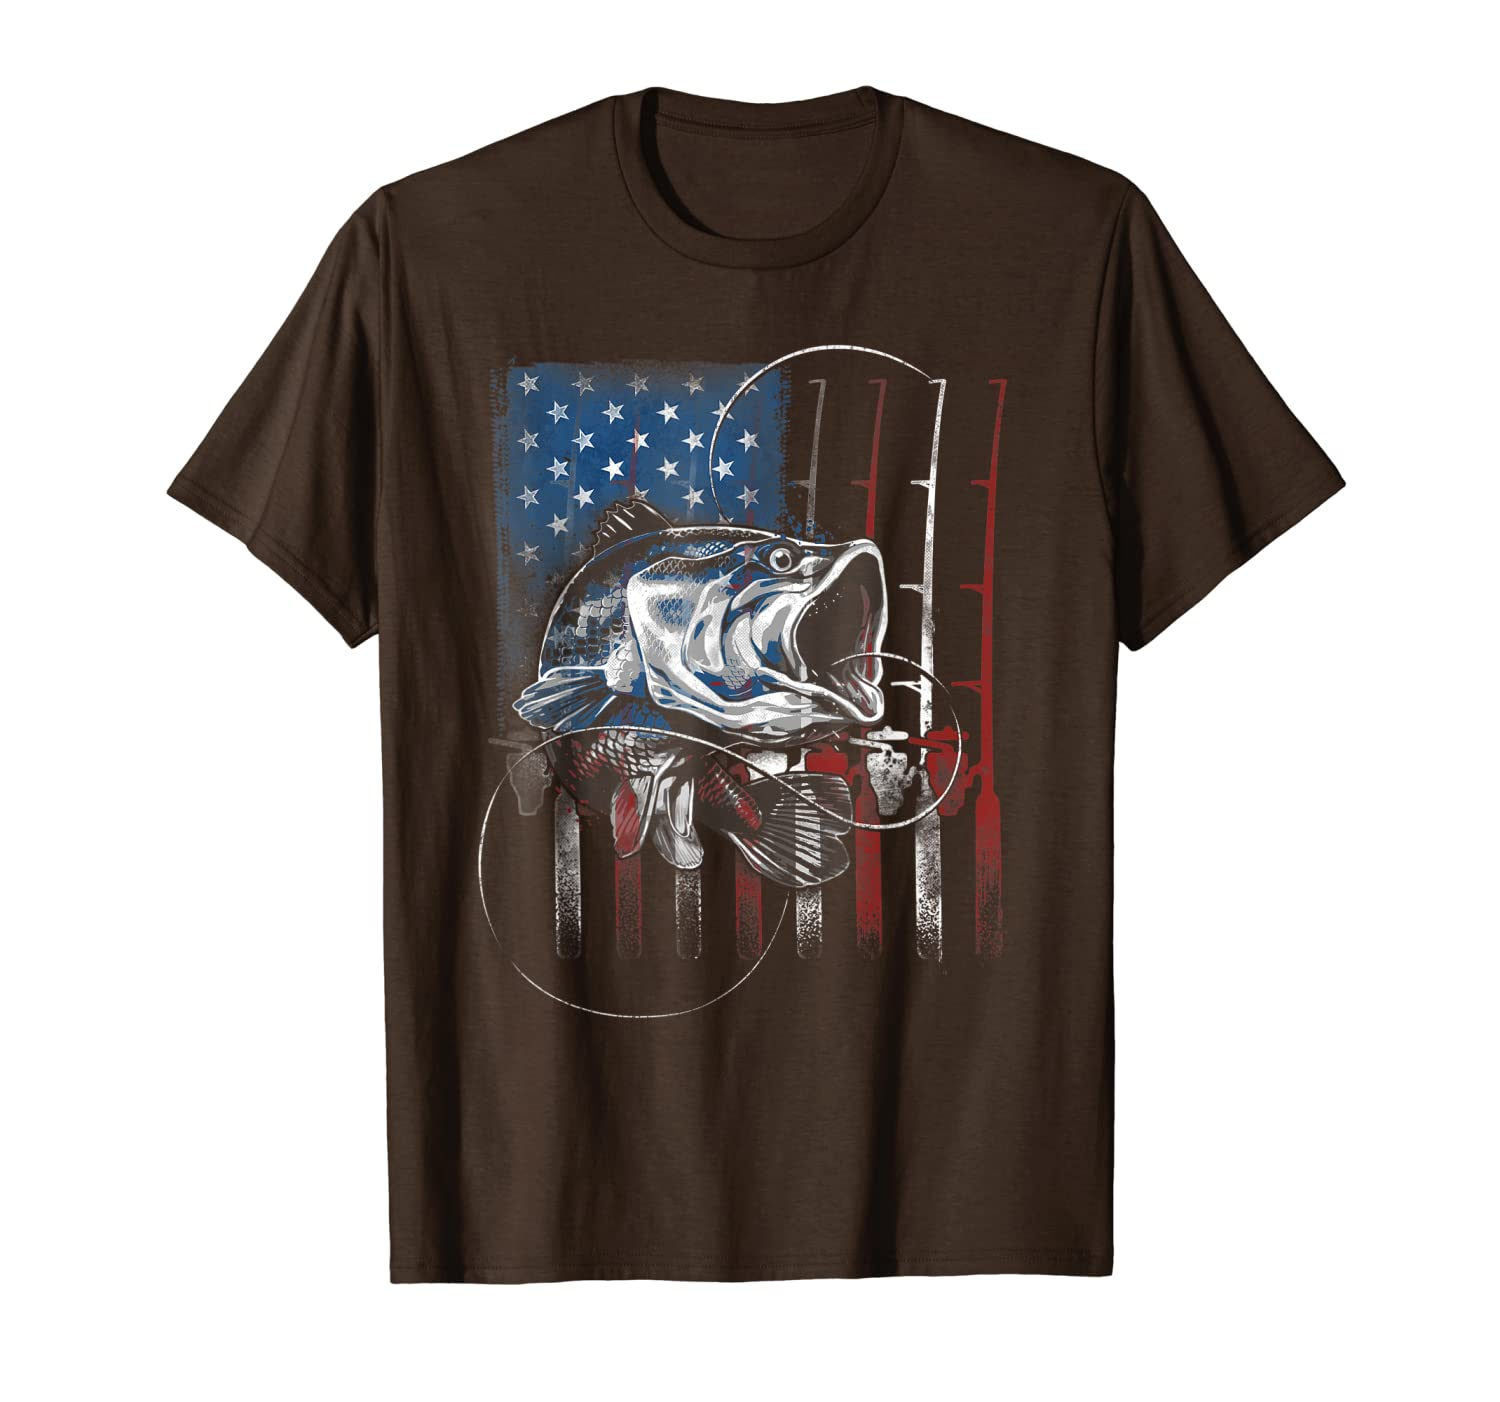 Fishing American Flag Vintage Tshirt USA Bass Fisherman Gift Unisex Tshirt